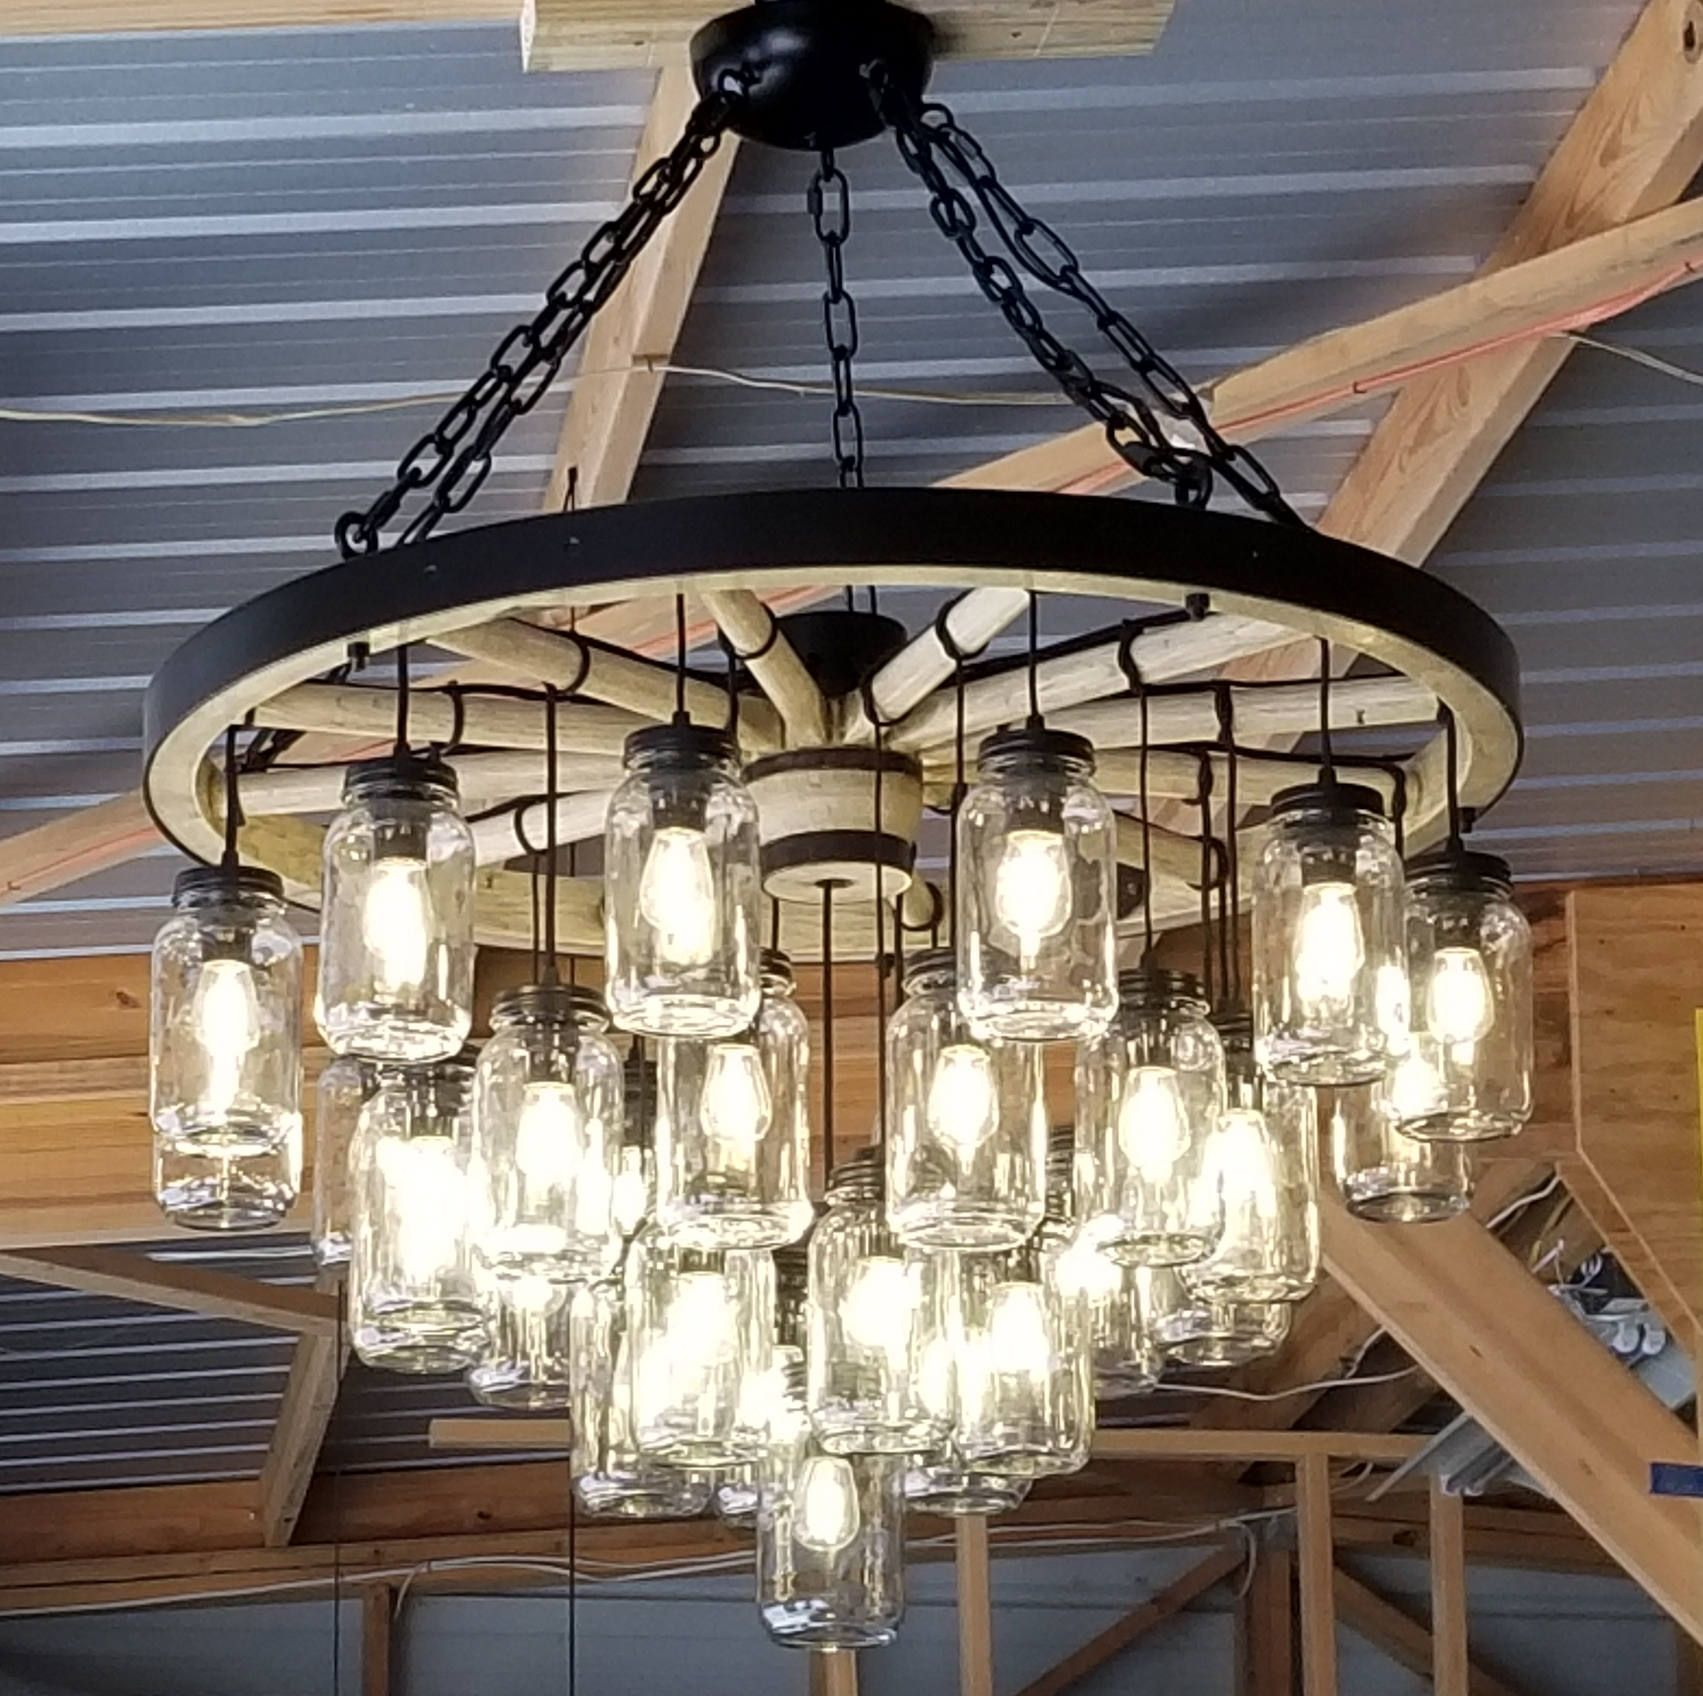 A wagon wheel chandelier with a mix of rusticvintage